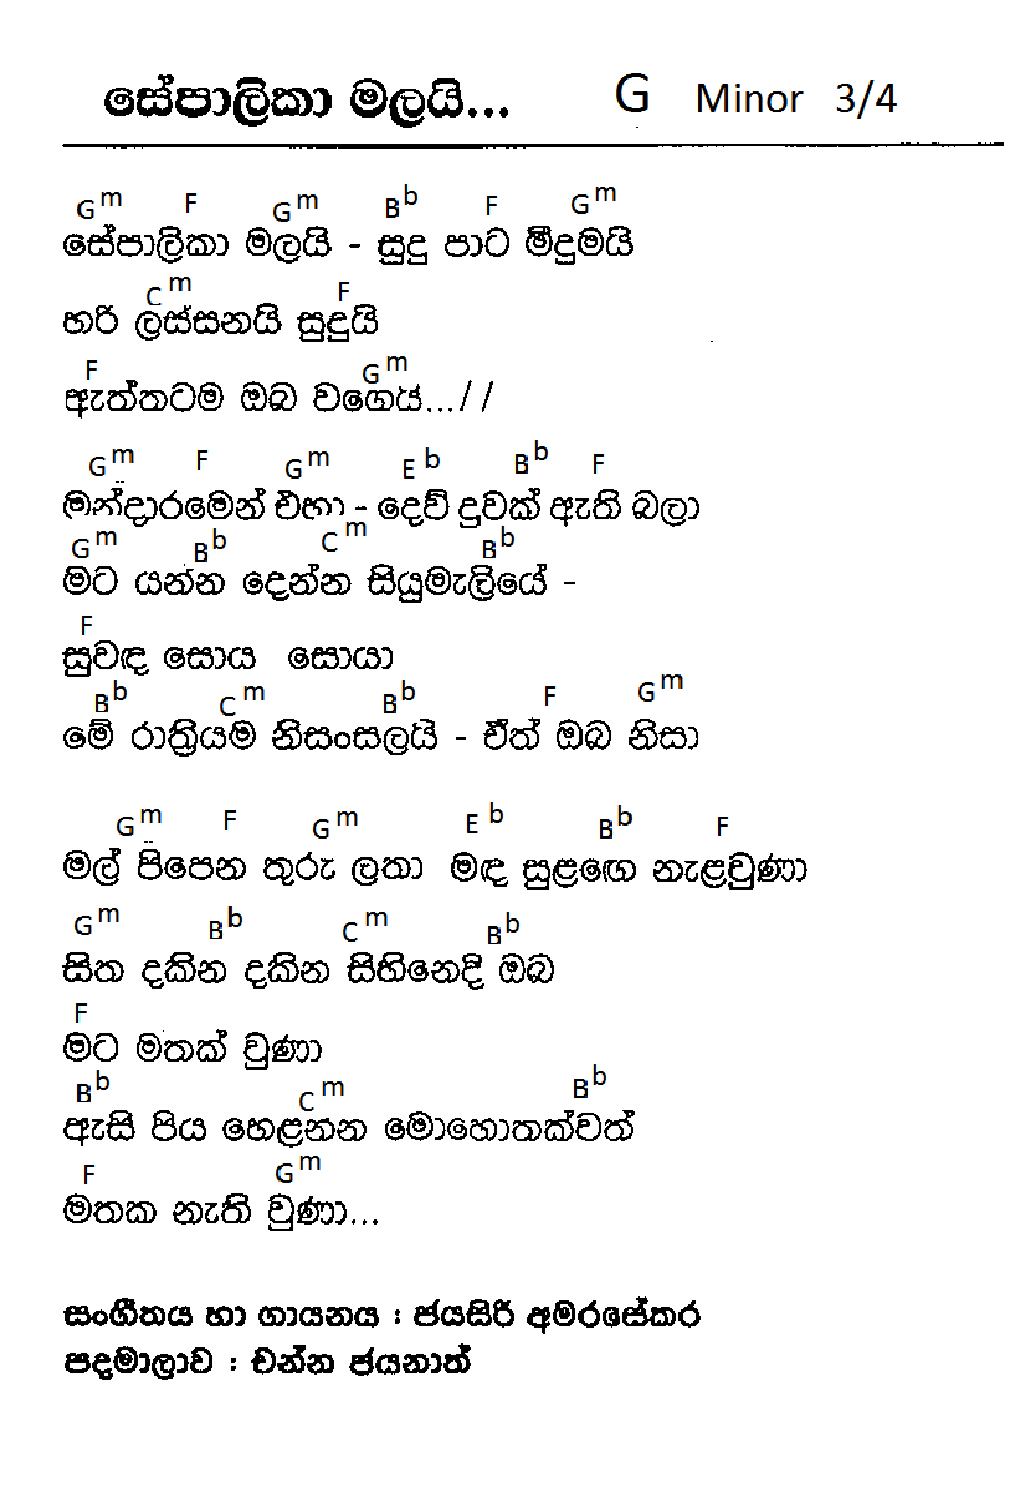 SINHALA SONGS LYRICS WITH MUSIC CHORDS: ‌සේපාලිකා මලයි ...